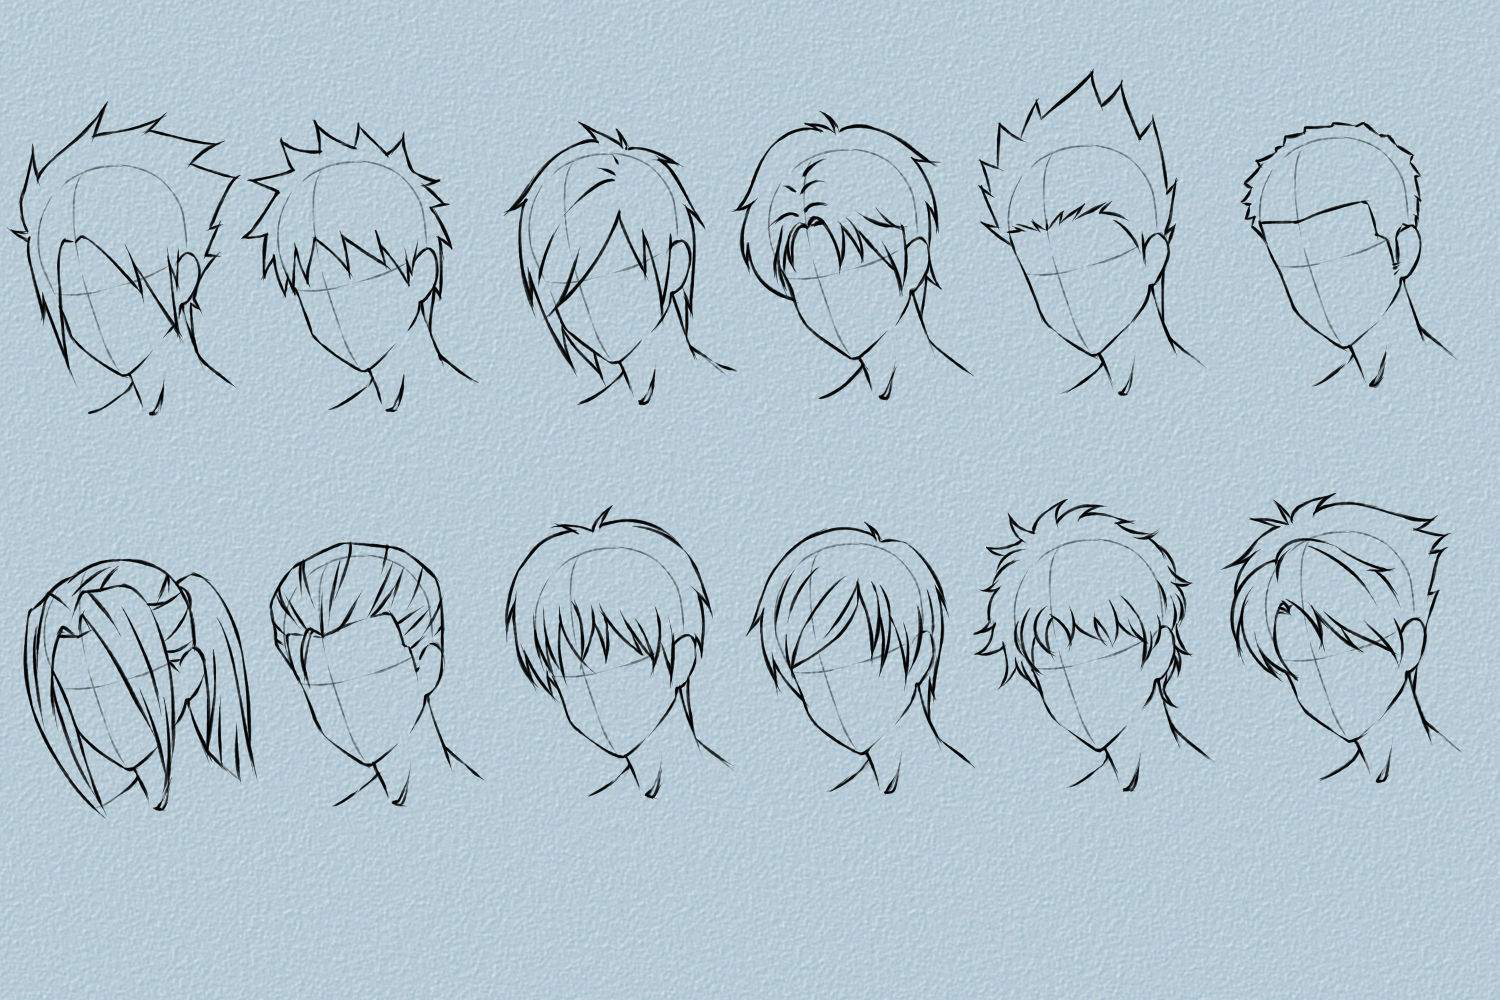 Male Anime Hairstyles Drawing at GetDrawings.com | Free for personal ...